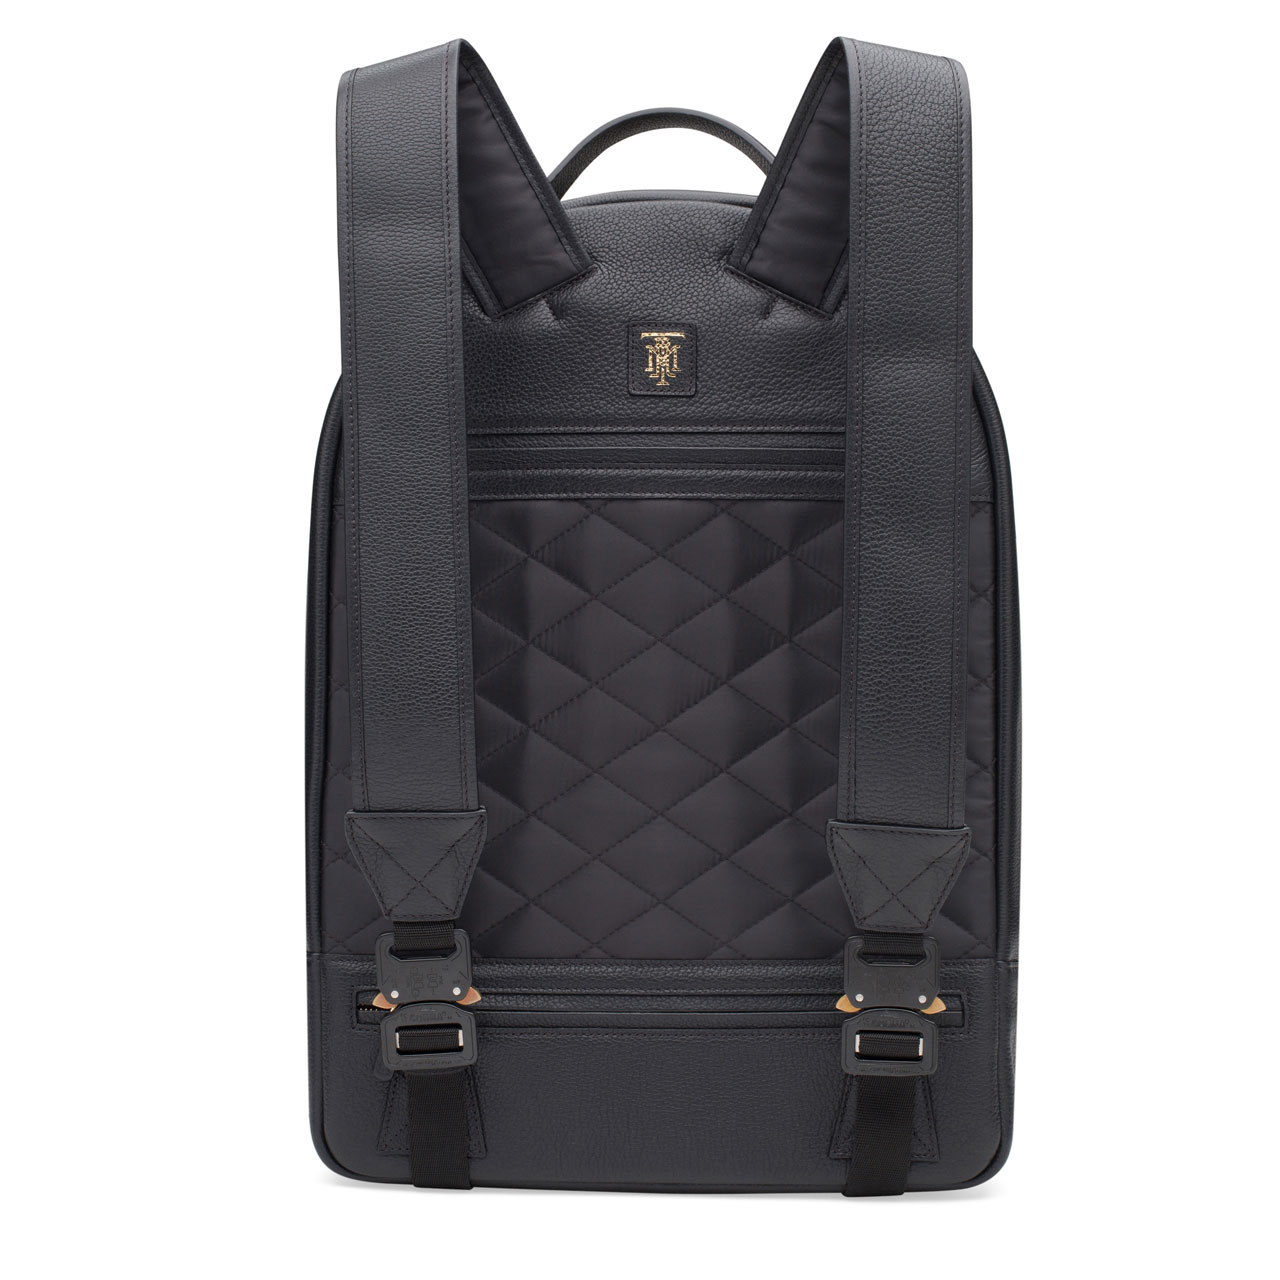 Nomad backpack by Montroi.